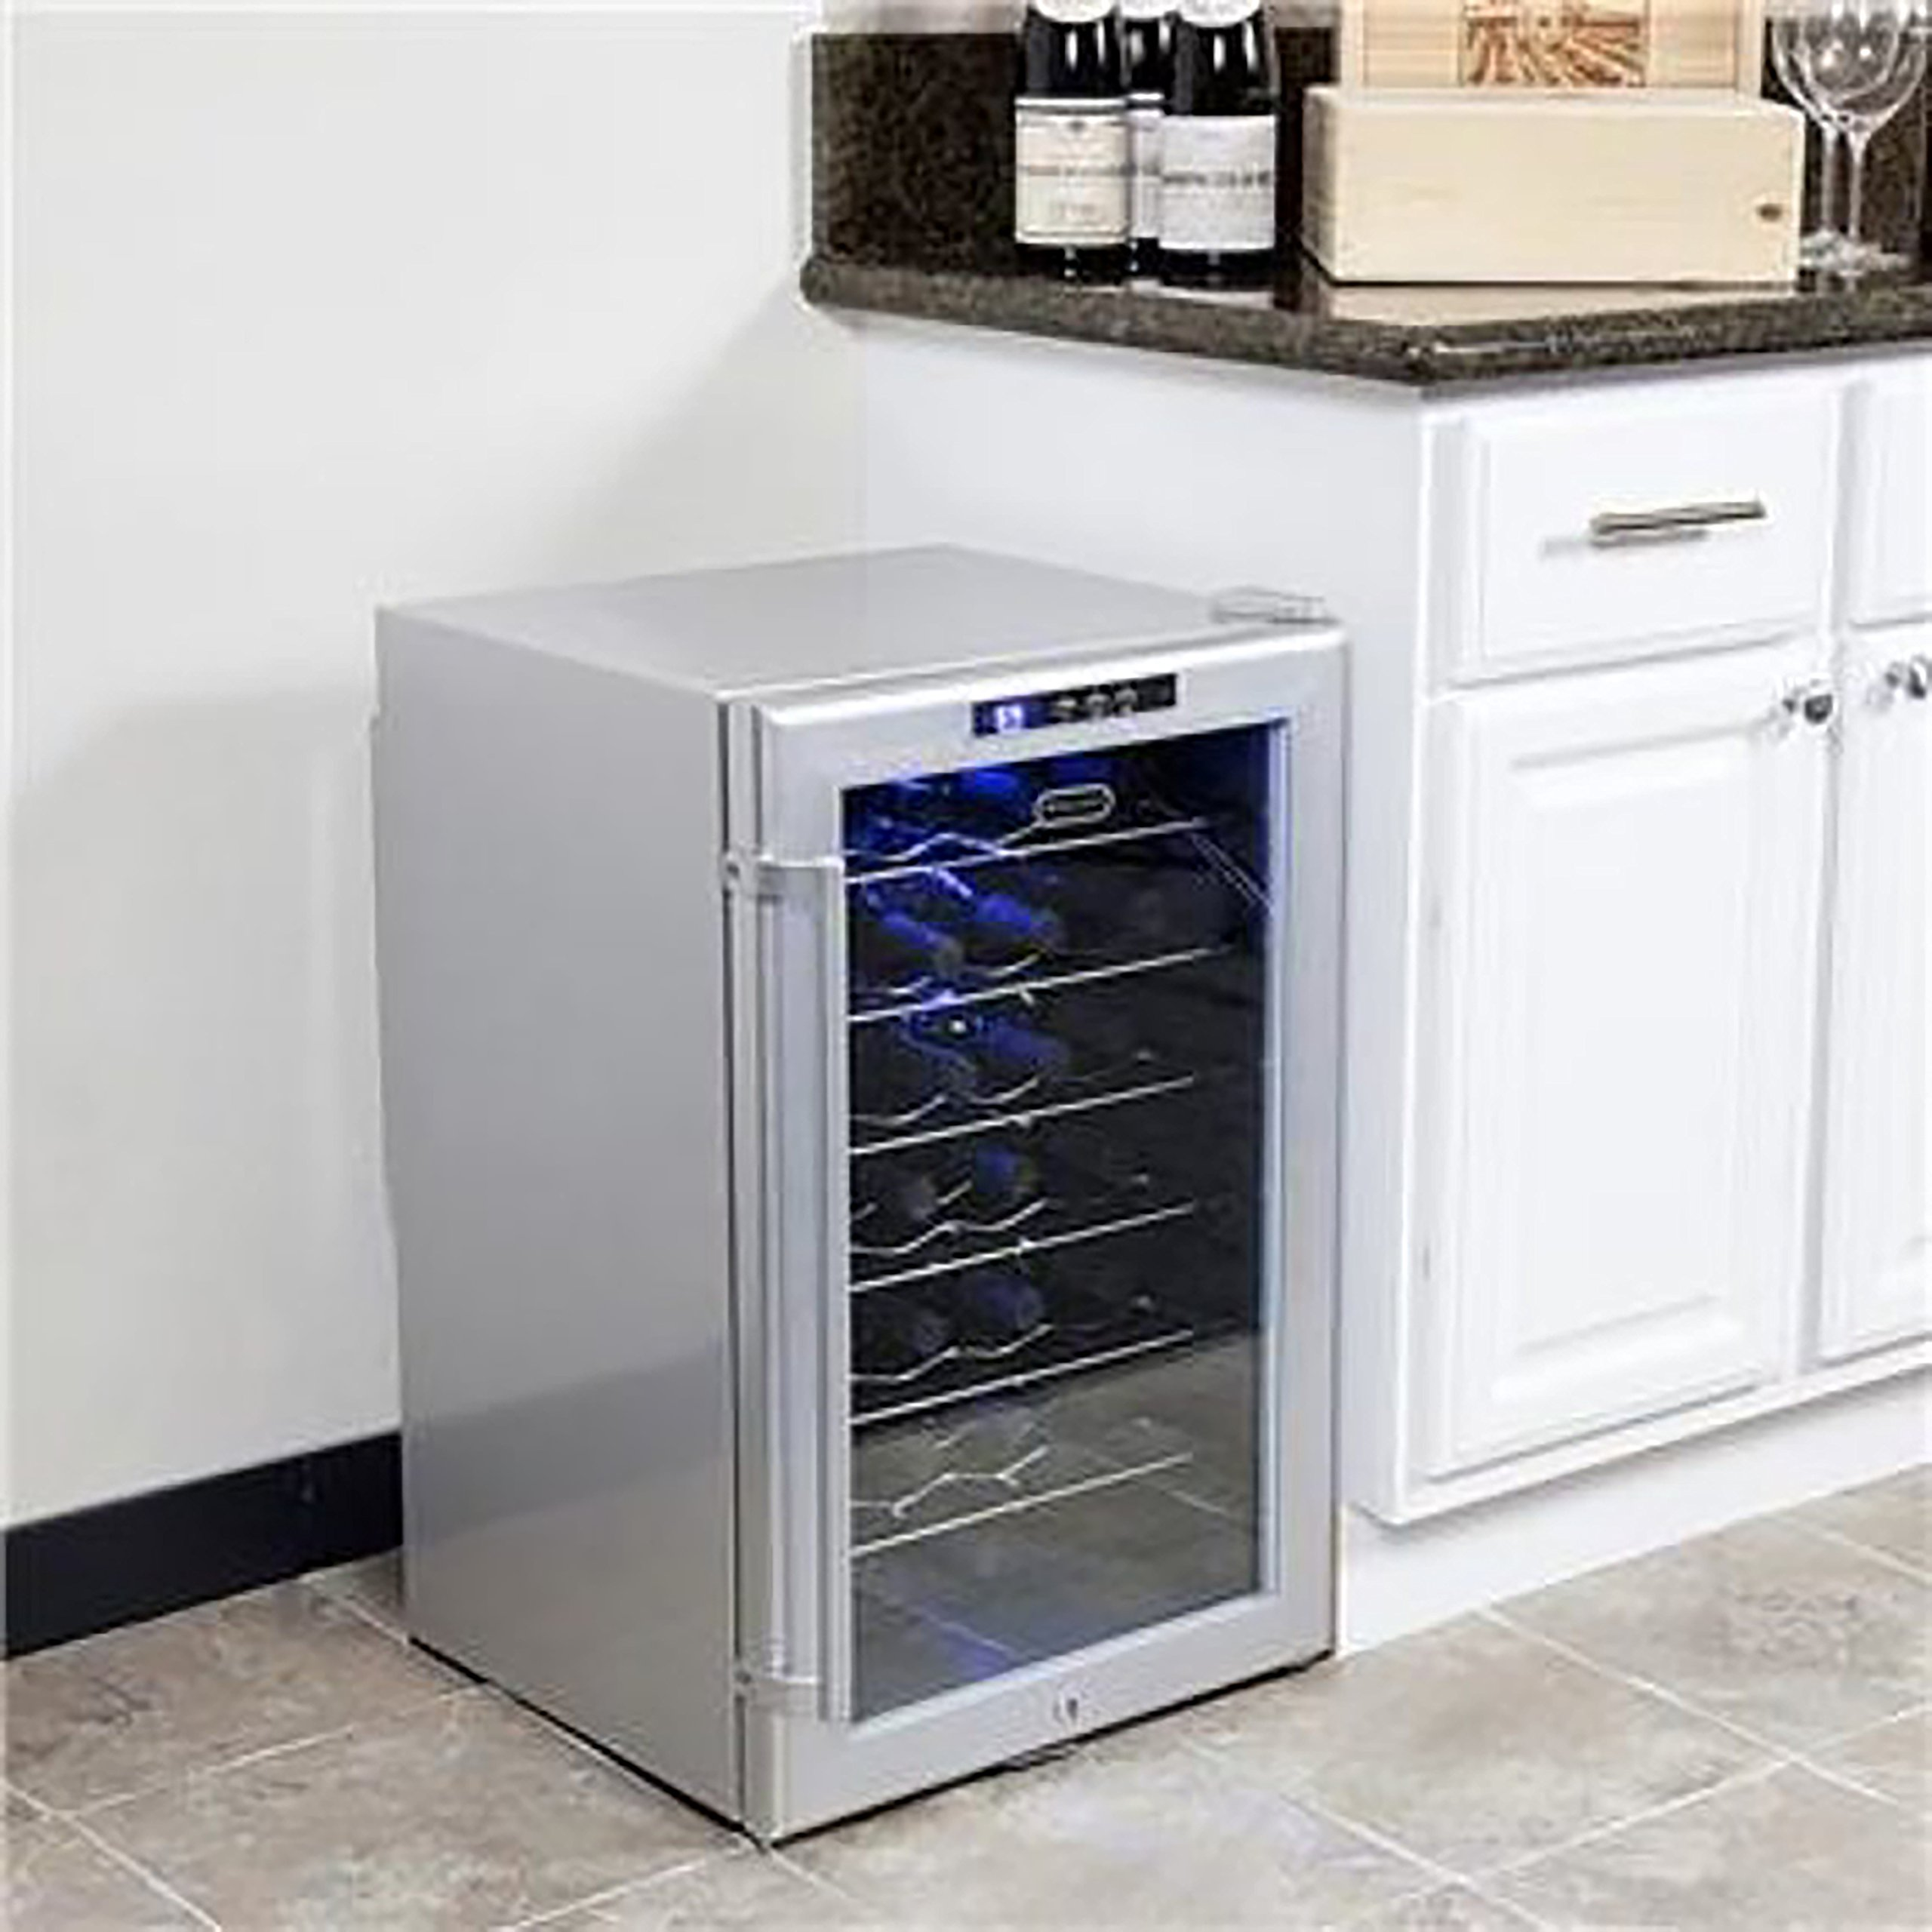 Whynter WC28S SNO 28 Bottle Wine Cooler, Platinum with Lock by Whynter (Image #10)